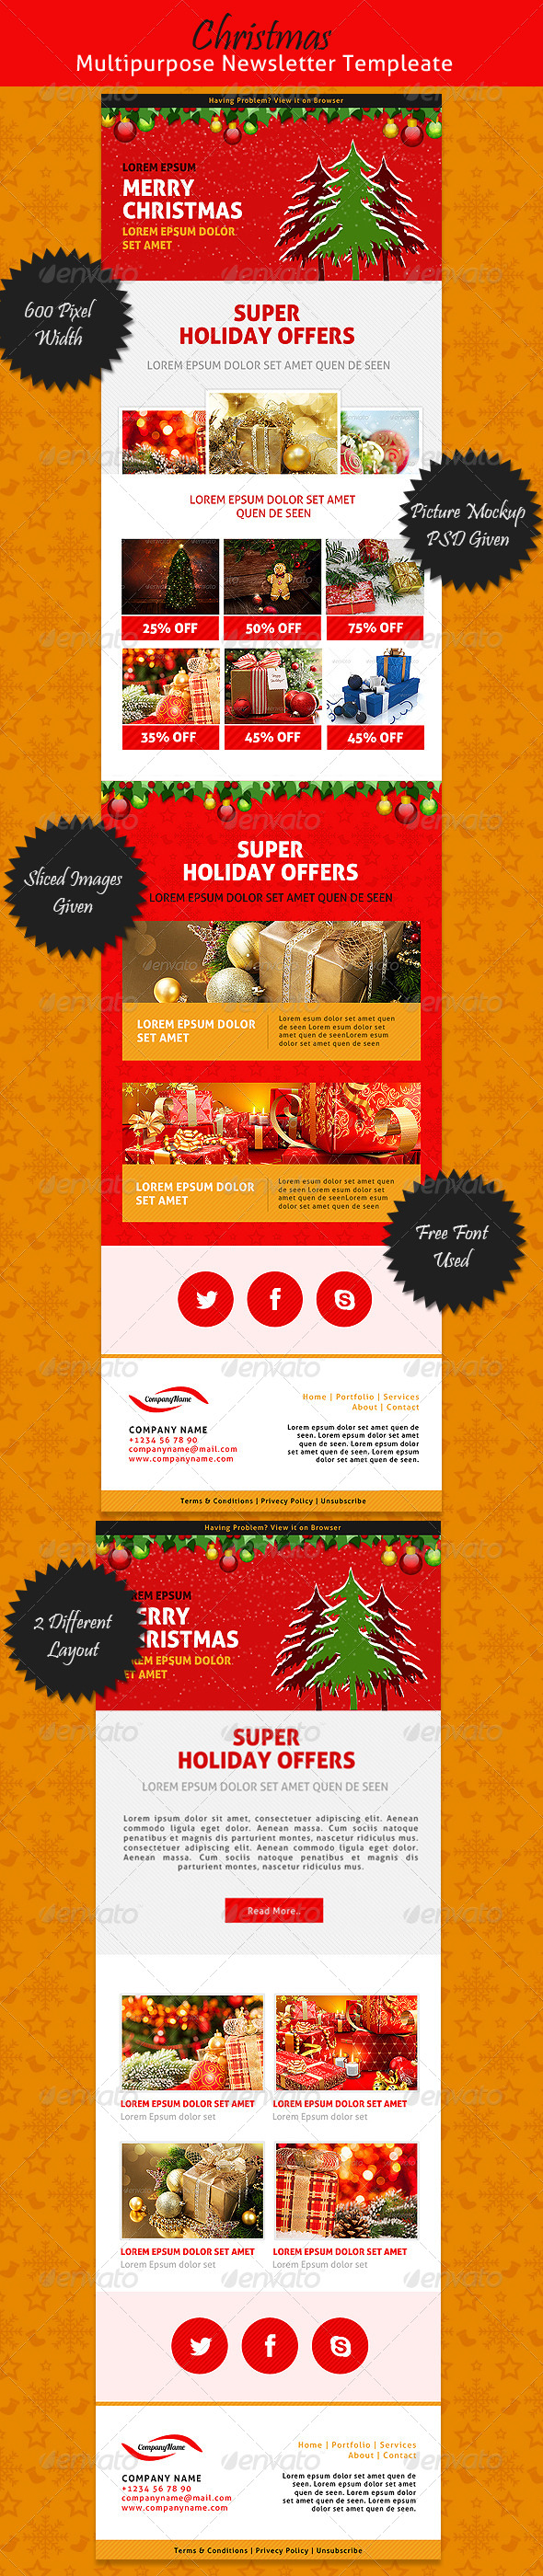 Christmas Multipurpose Newsletter Template - E-newsletters Web Elements